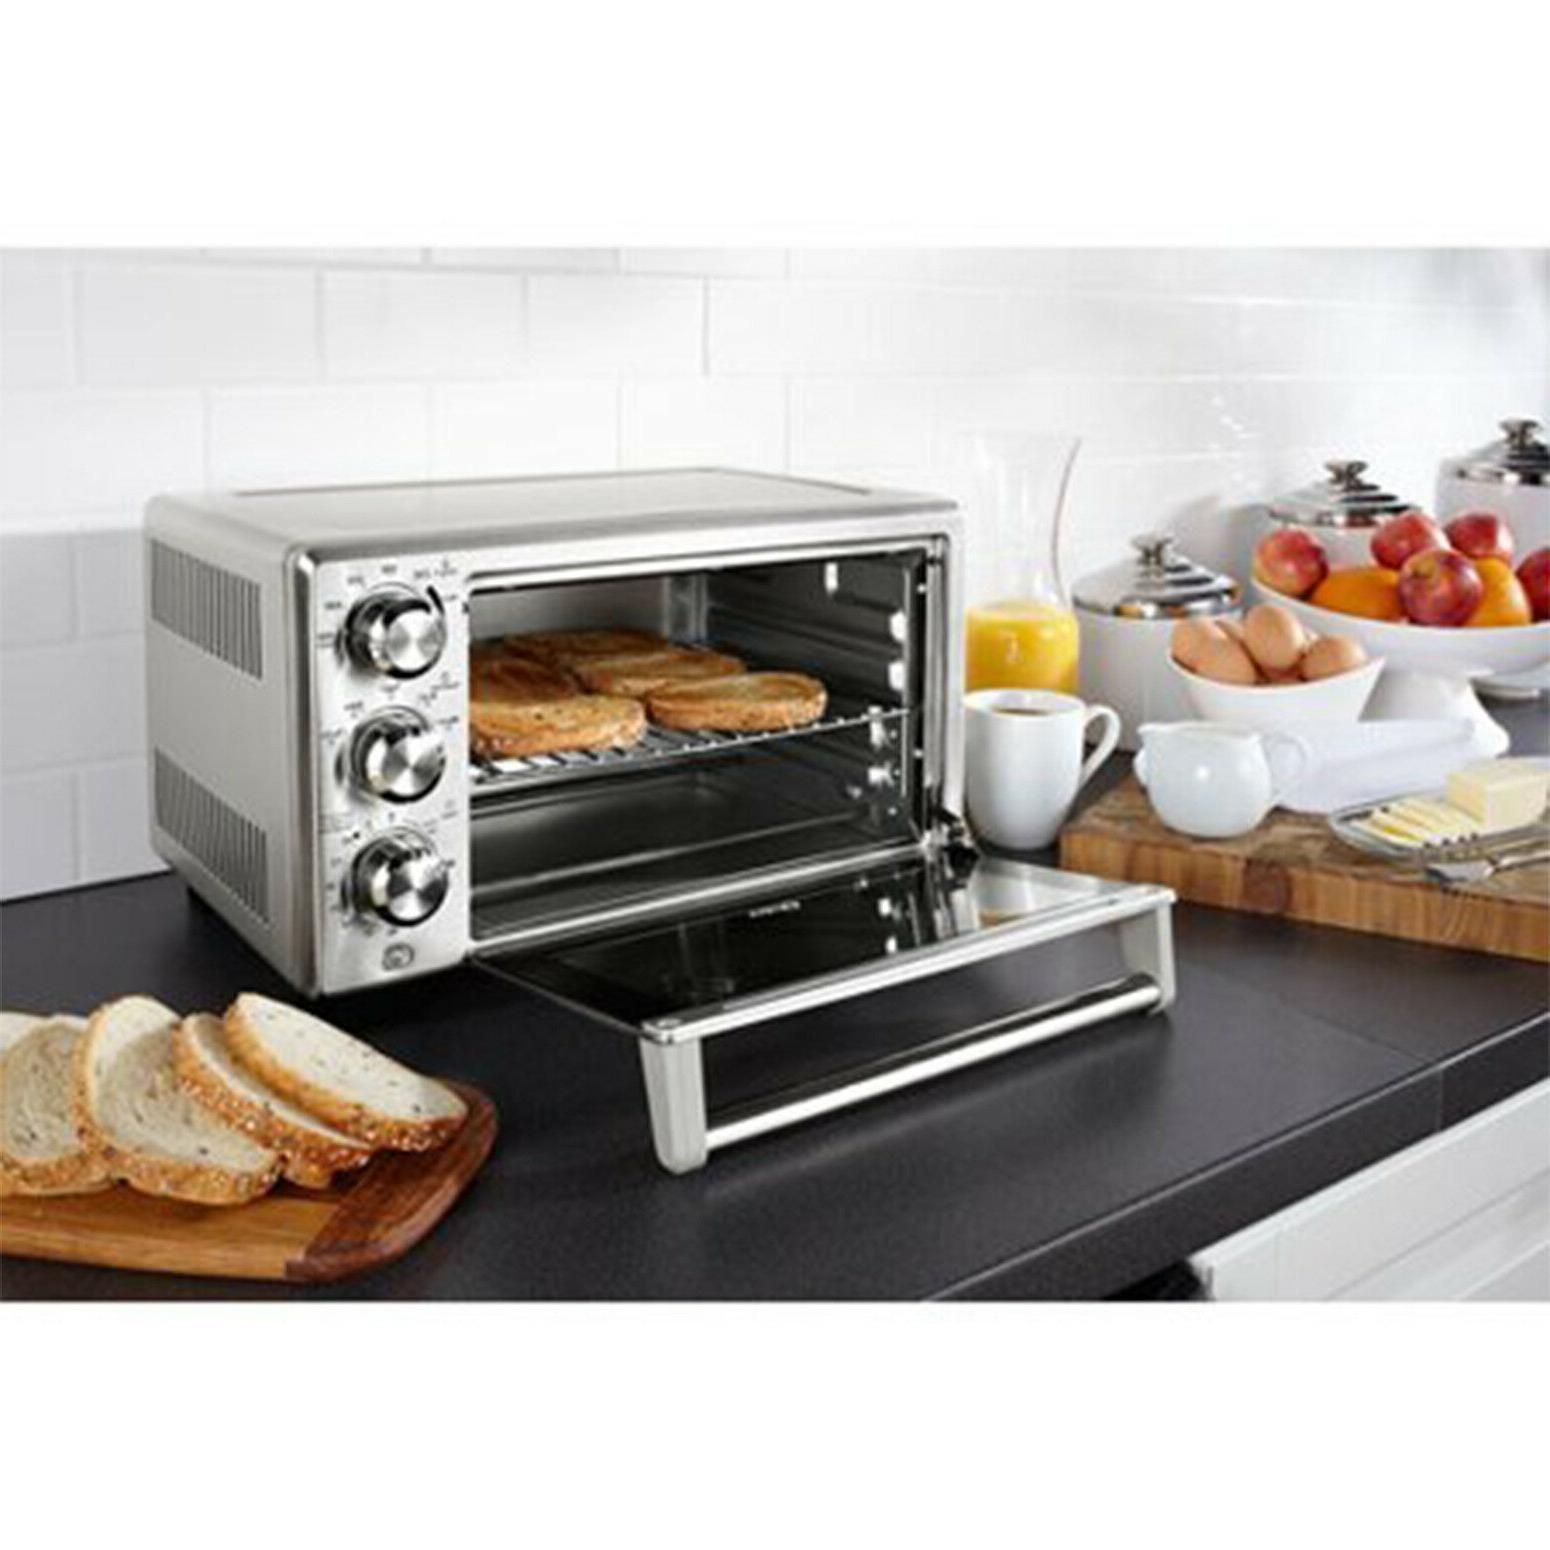 Convection Toaster 6 Slice Brushed Stainless Steel Family-Size Cook